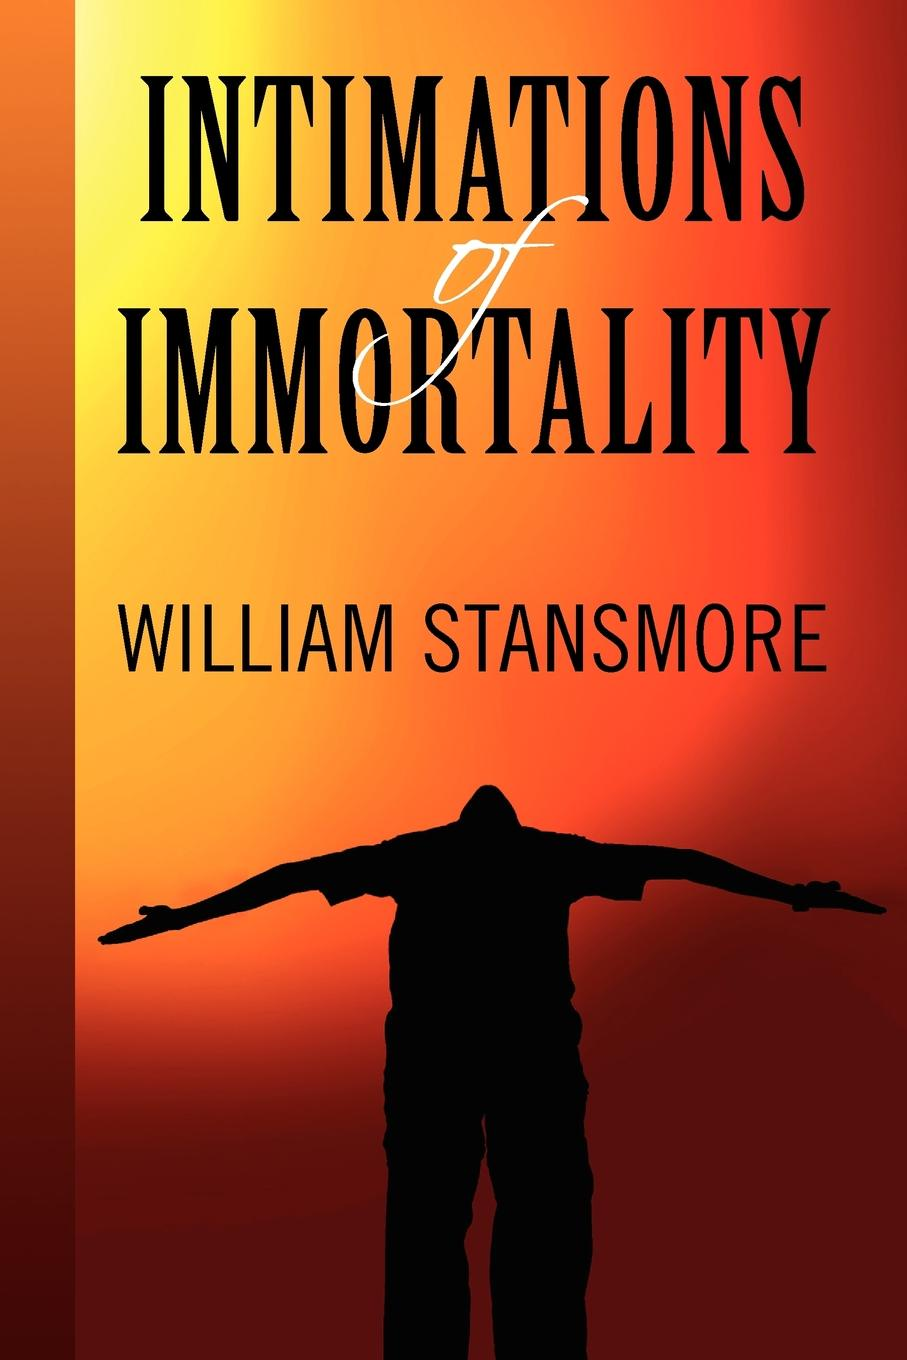 William Stansmore Intimations of Immortality immortality бессмертие